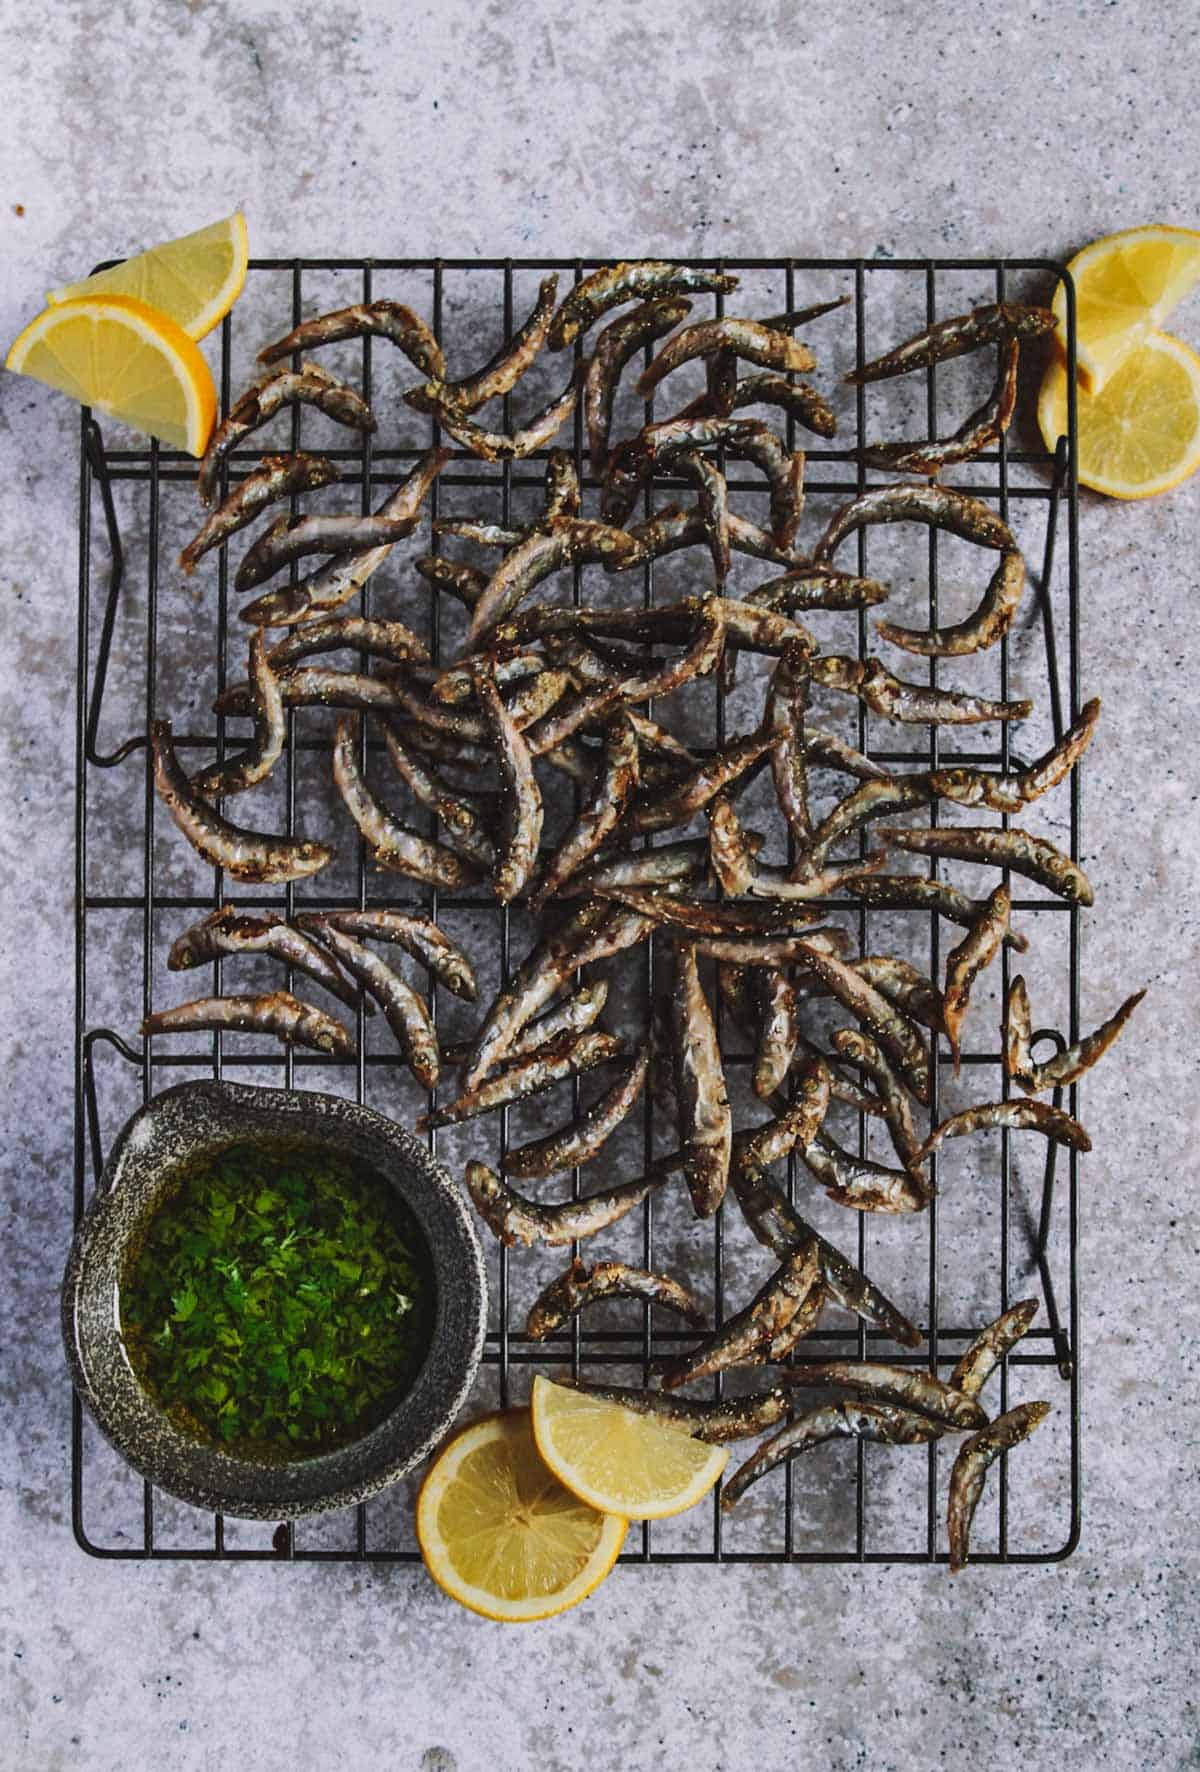 A cooling rack on a table with small fried fish, lemon slices and a bowl with sauce.